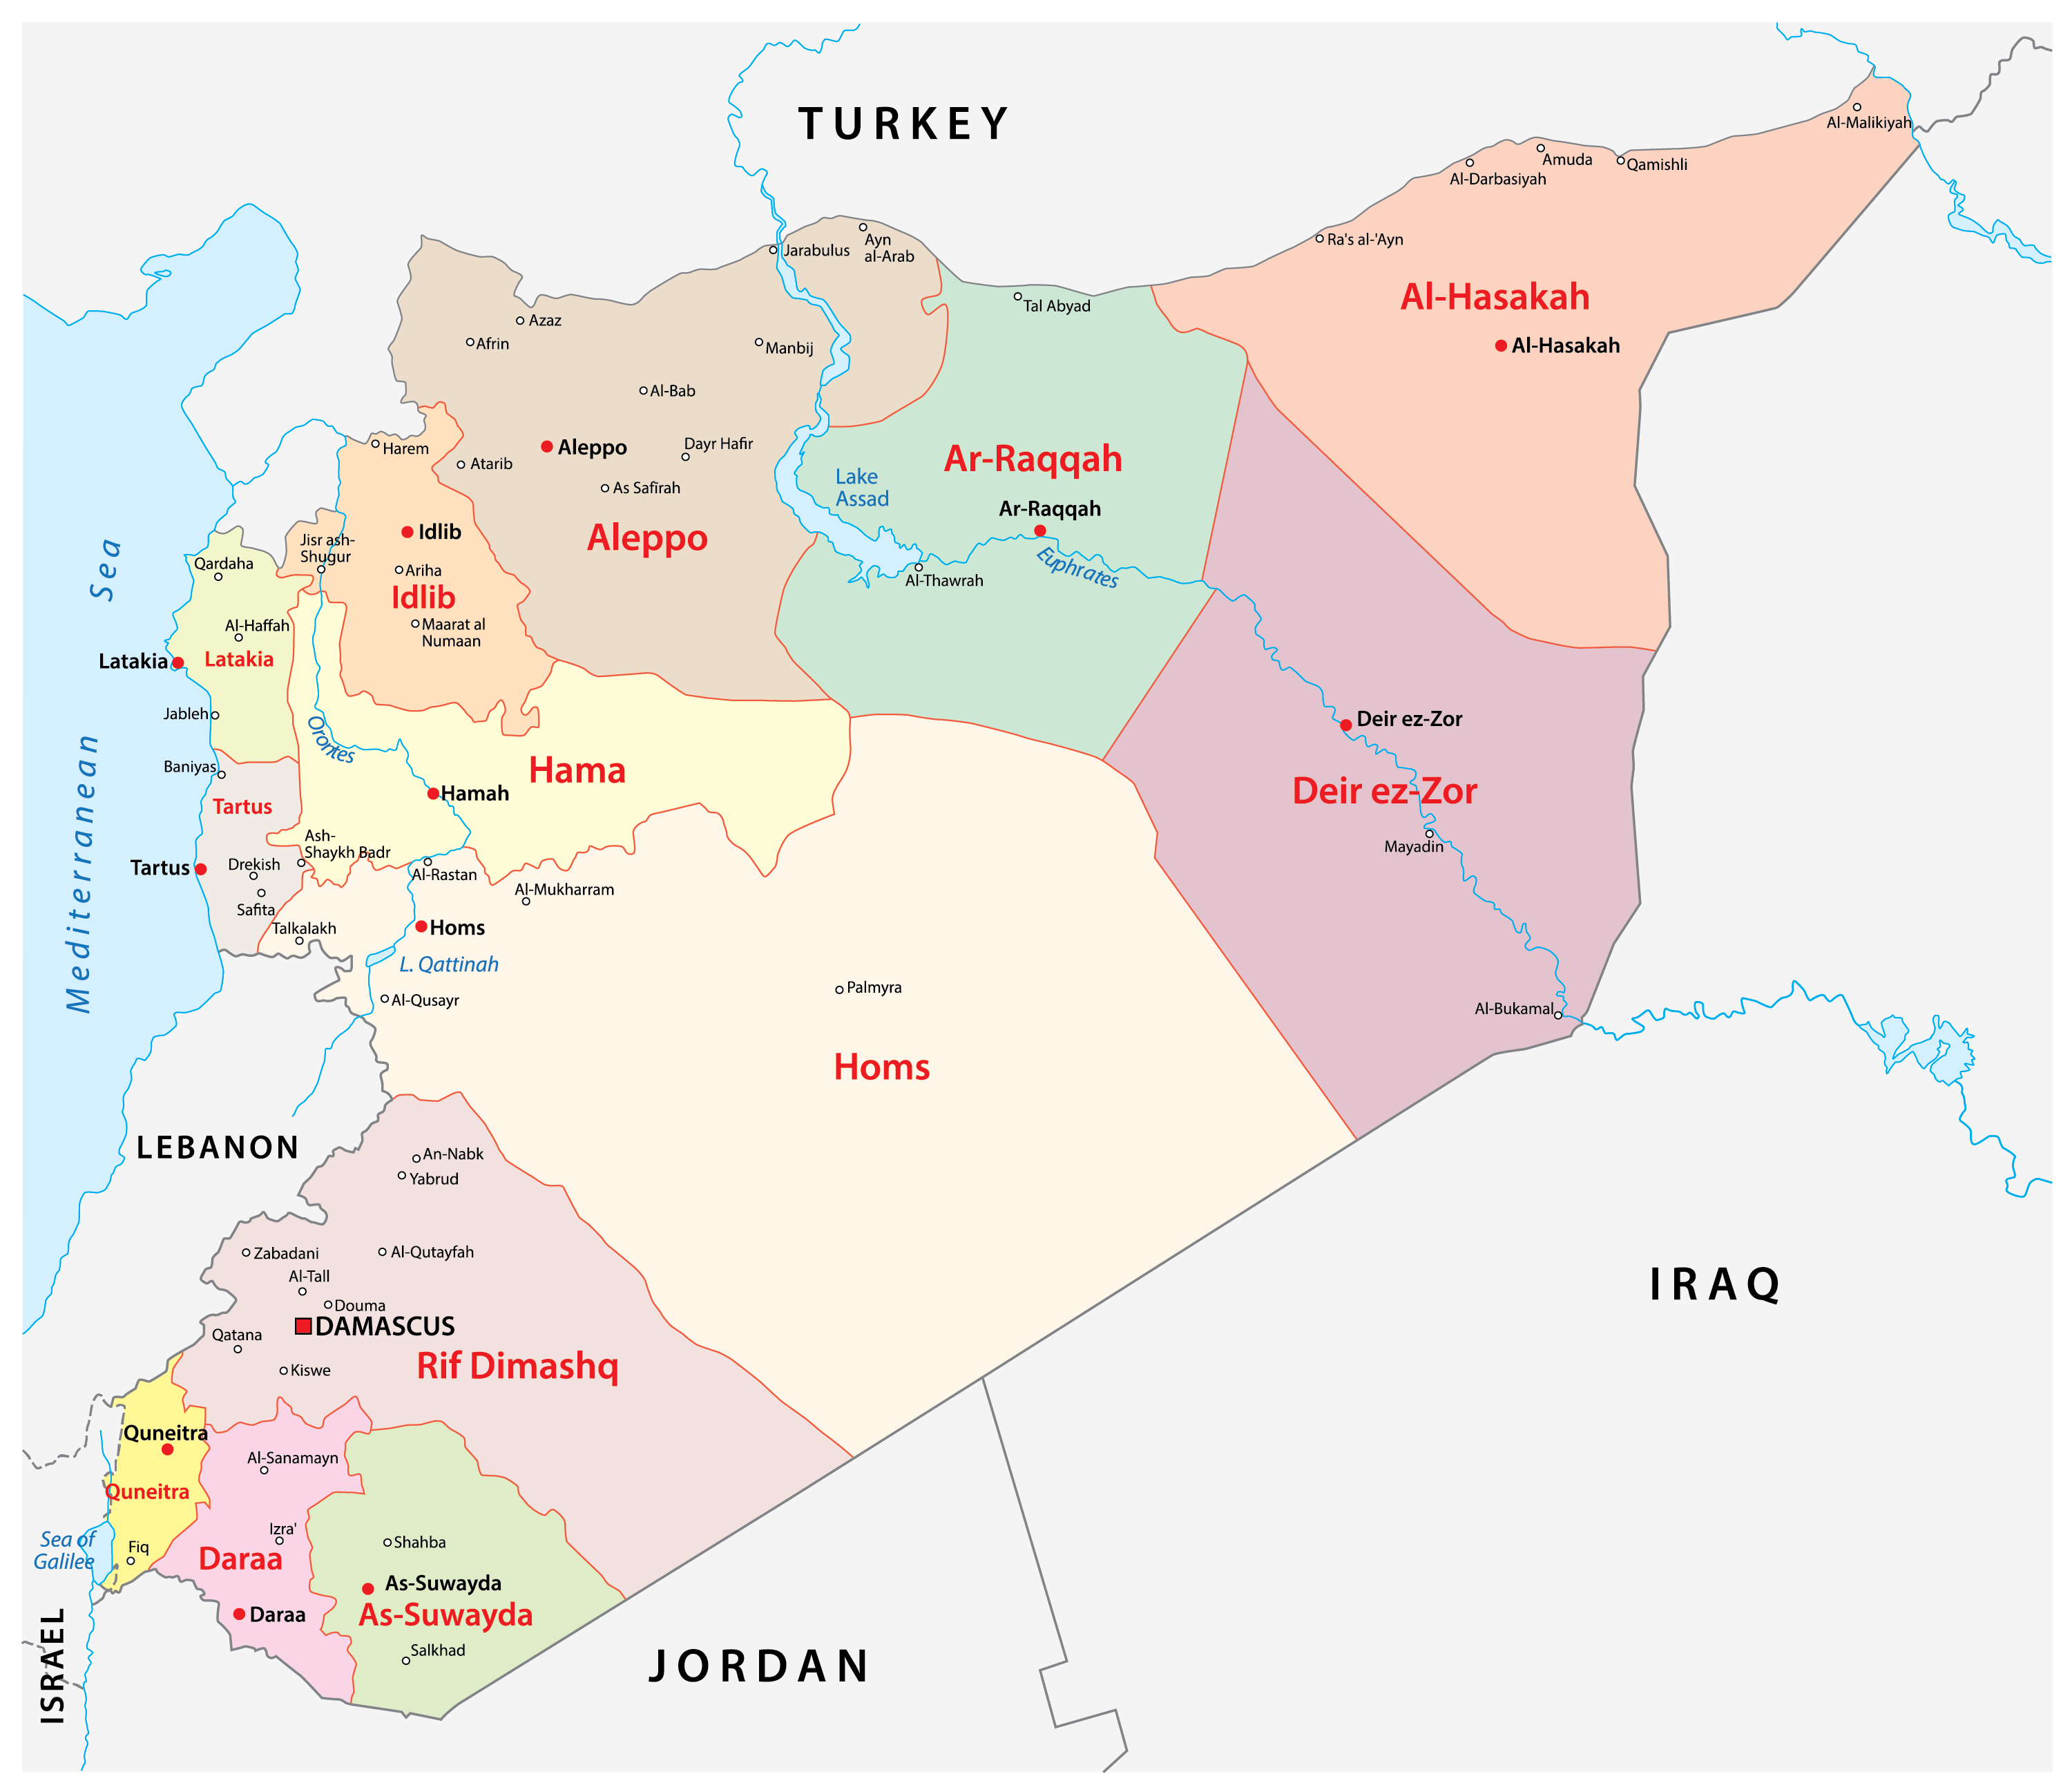 Political Map of Syria showing the 14 governorates, their capitals, and the national capital of Damascus.